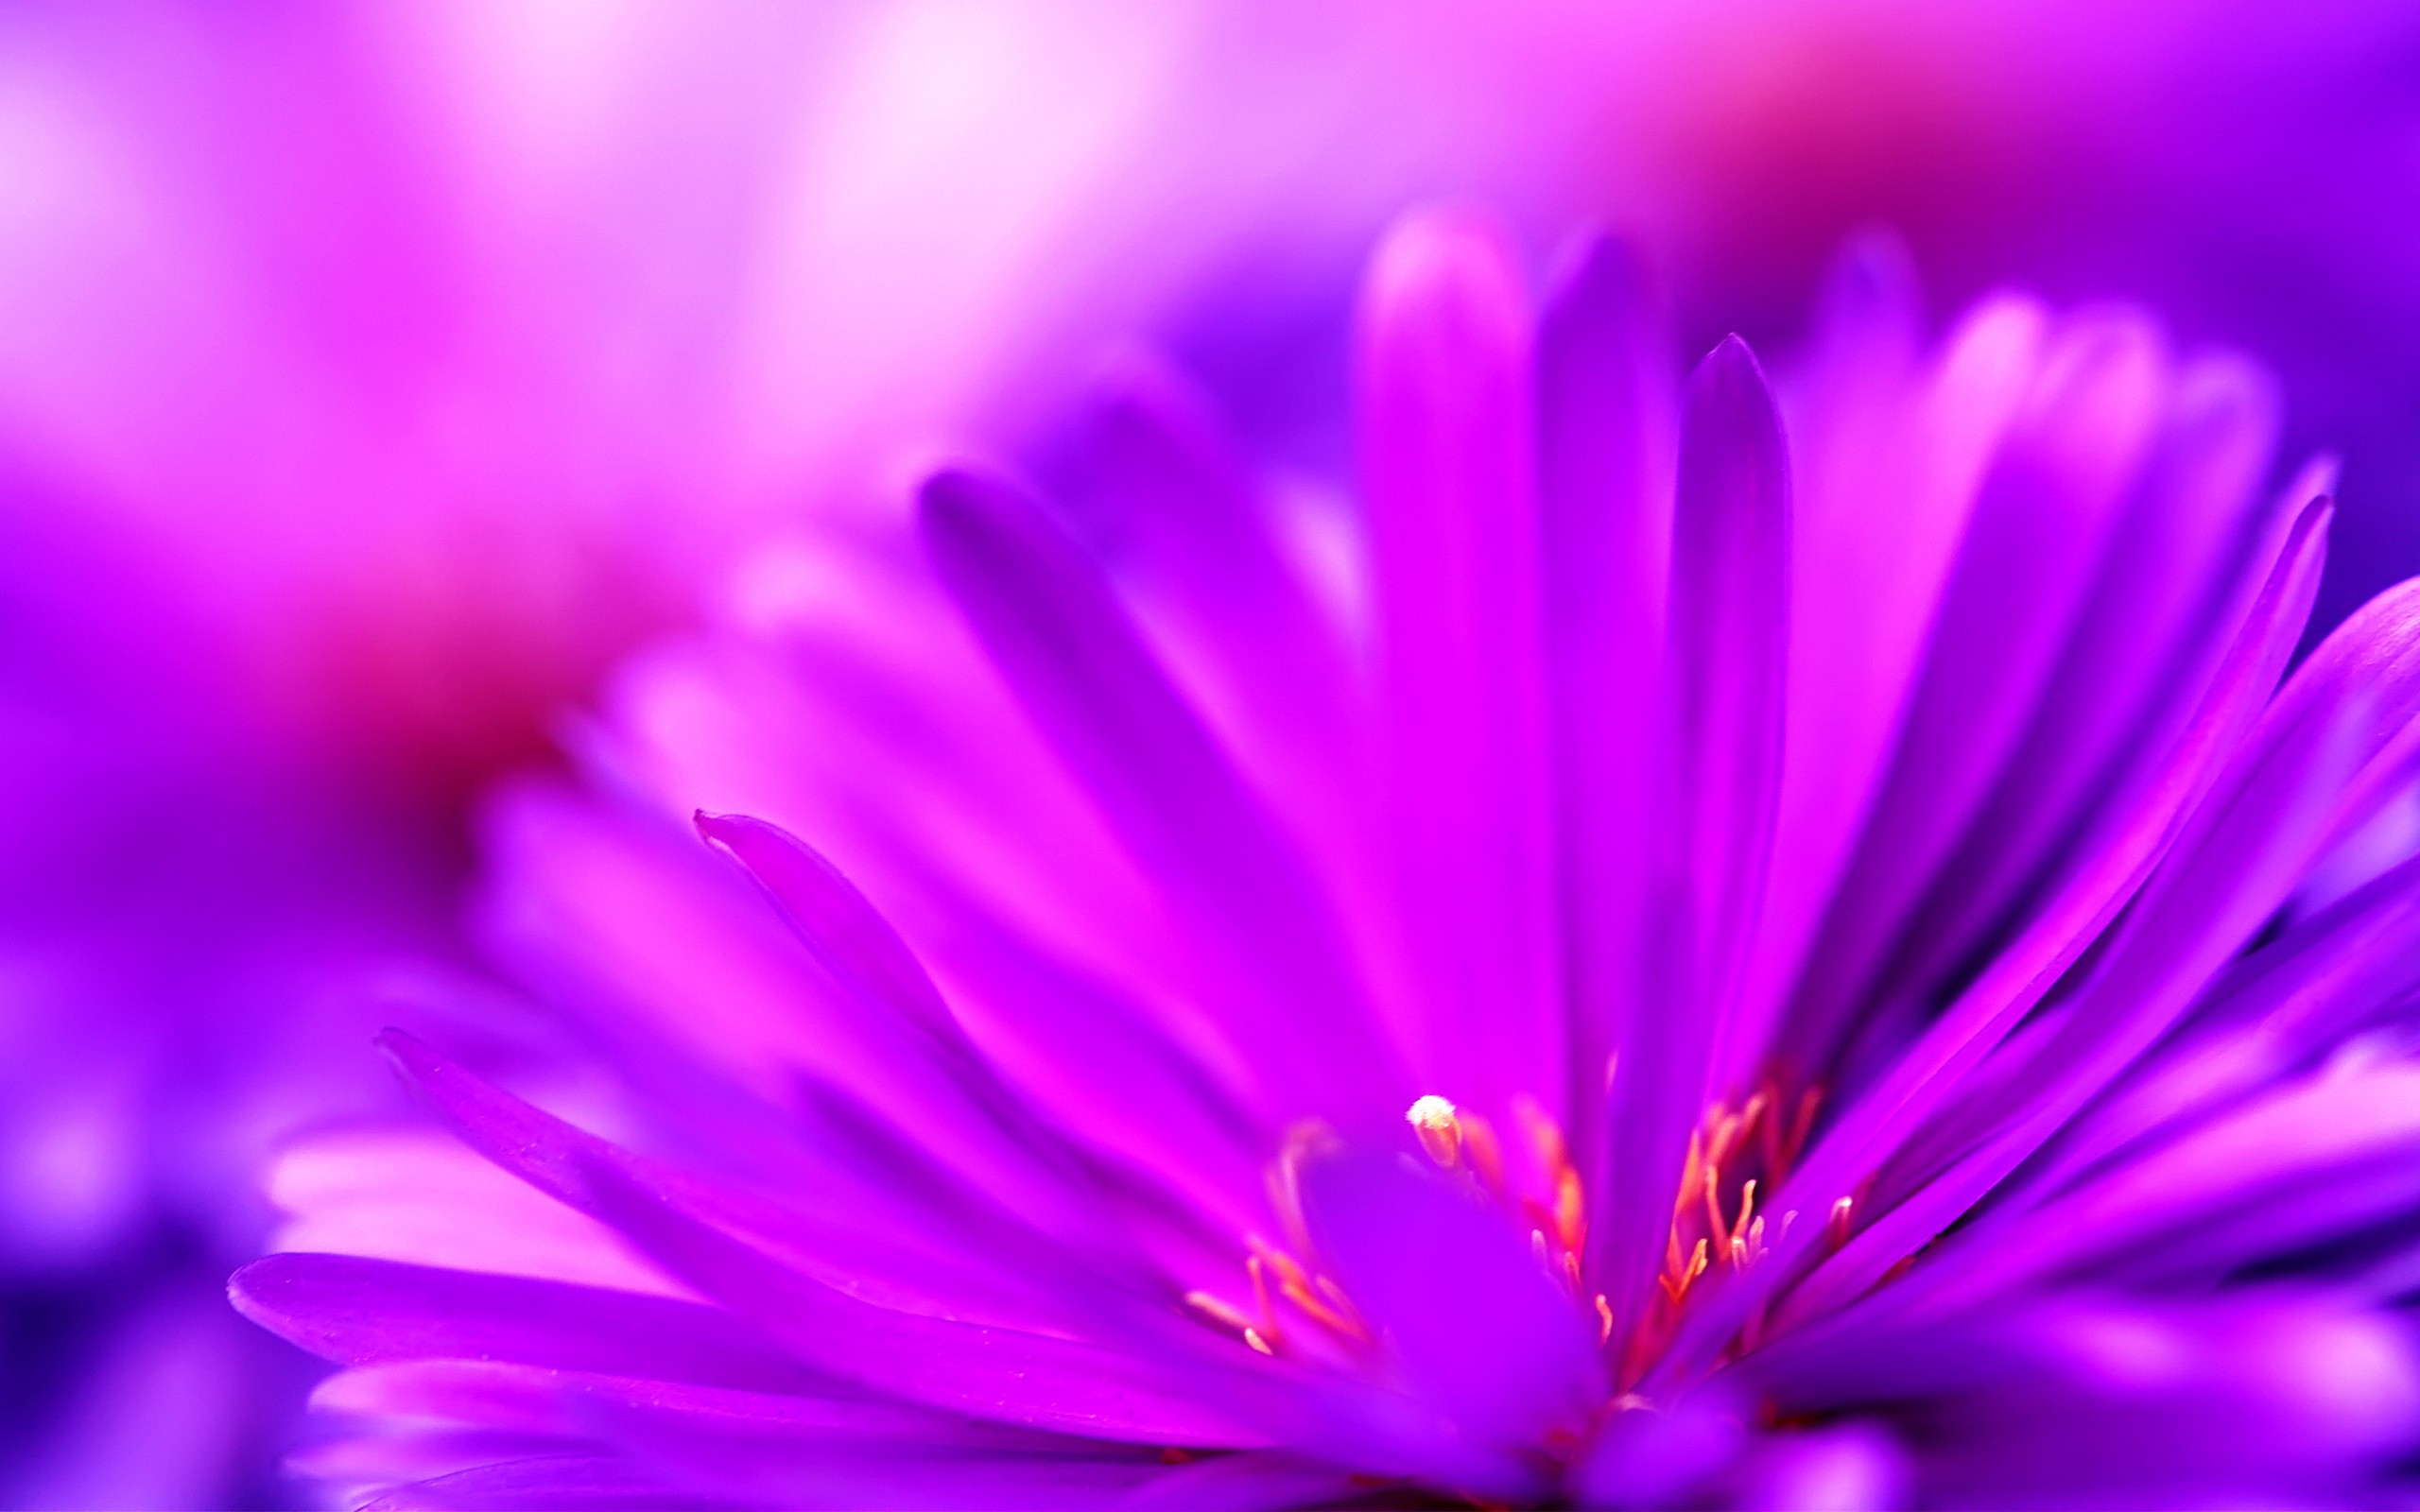 Cute Purple Backgrounds submited images 2560x1600